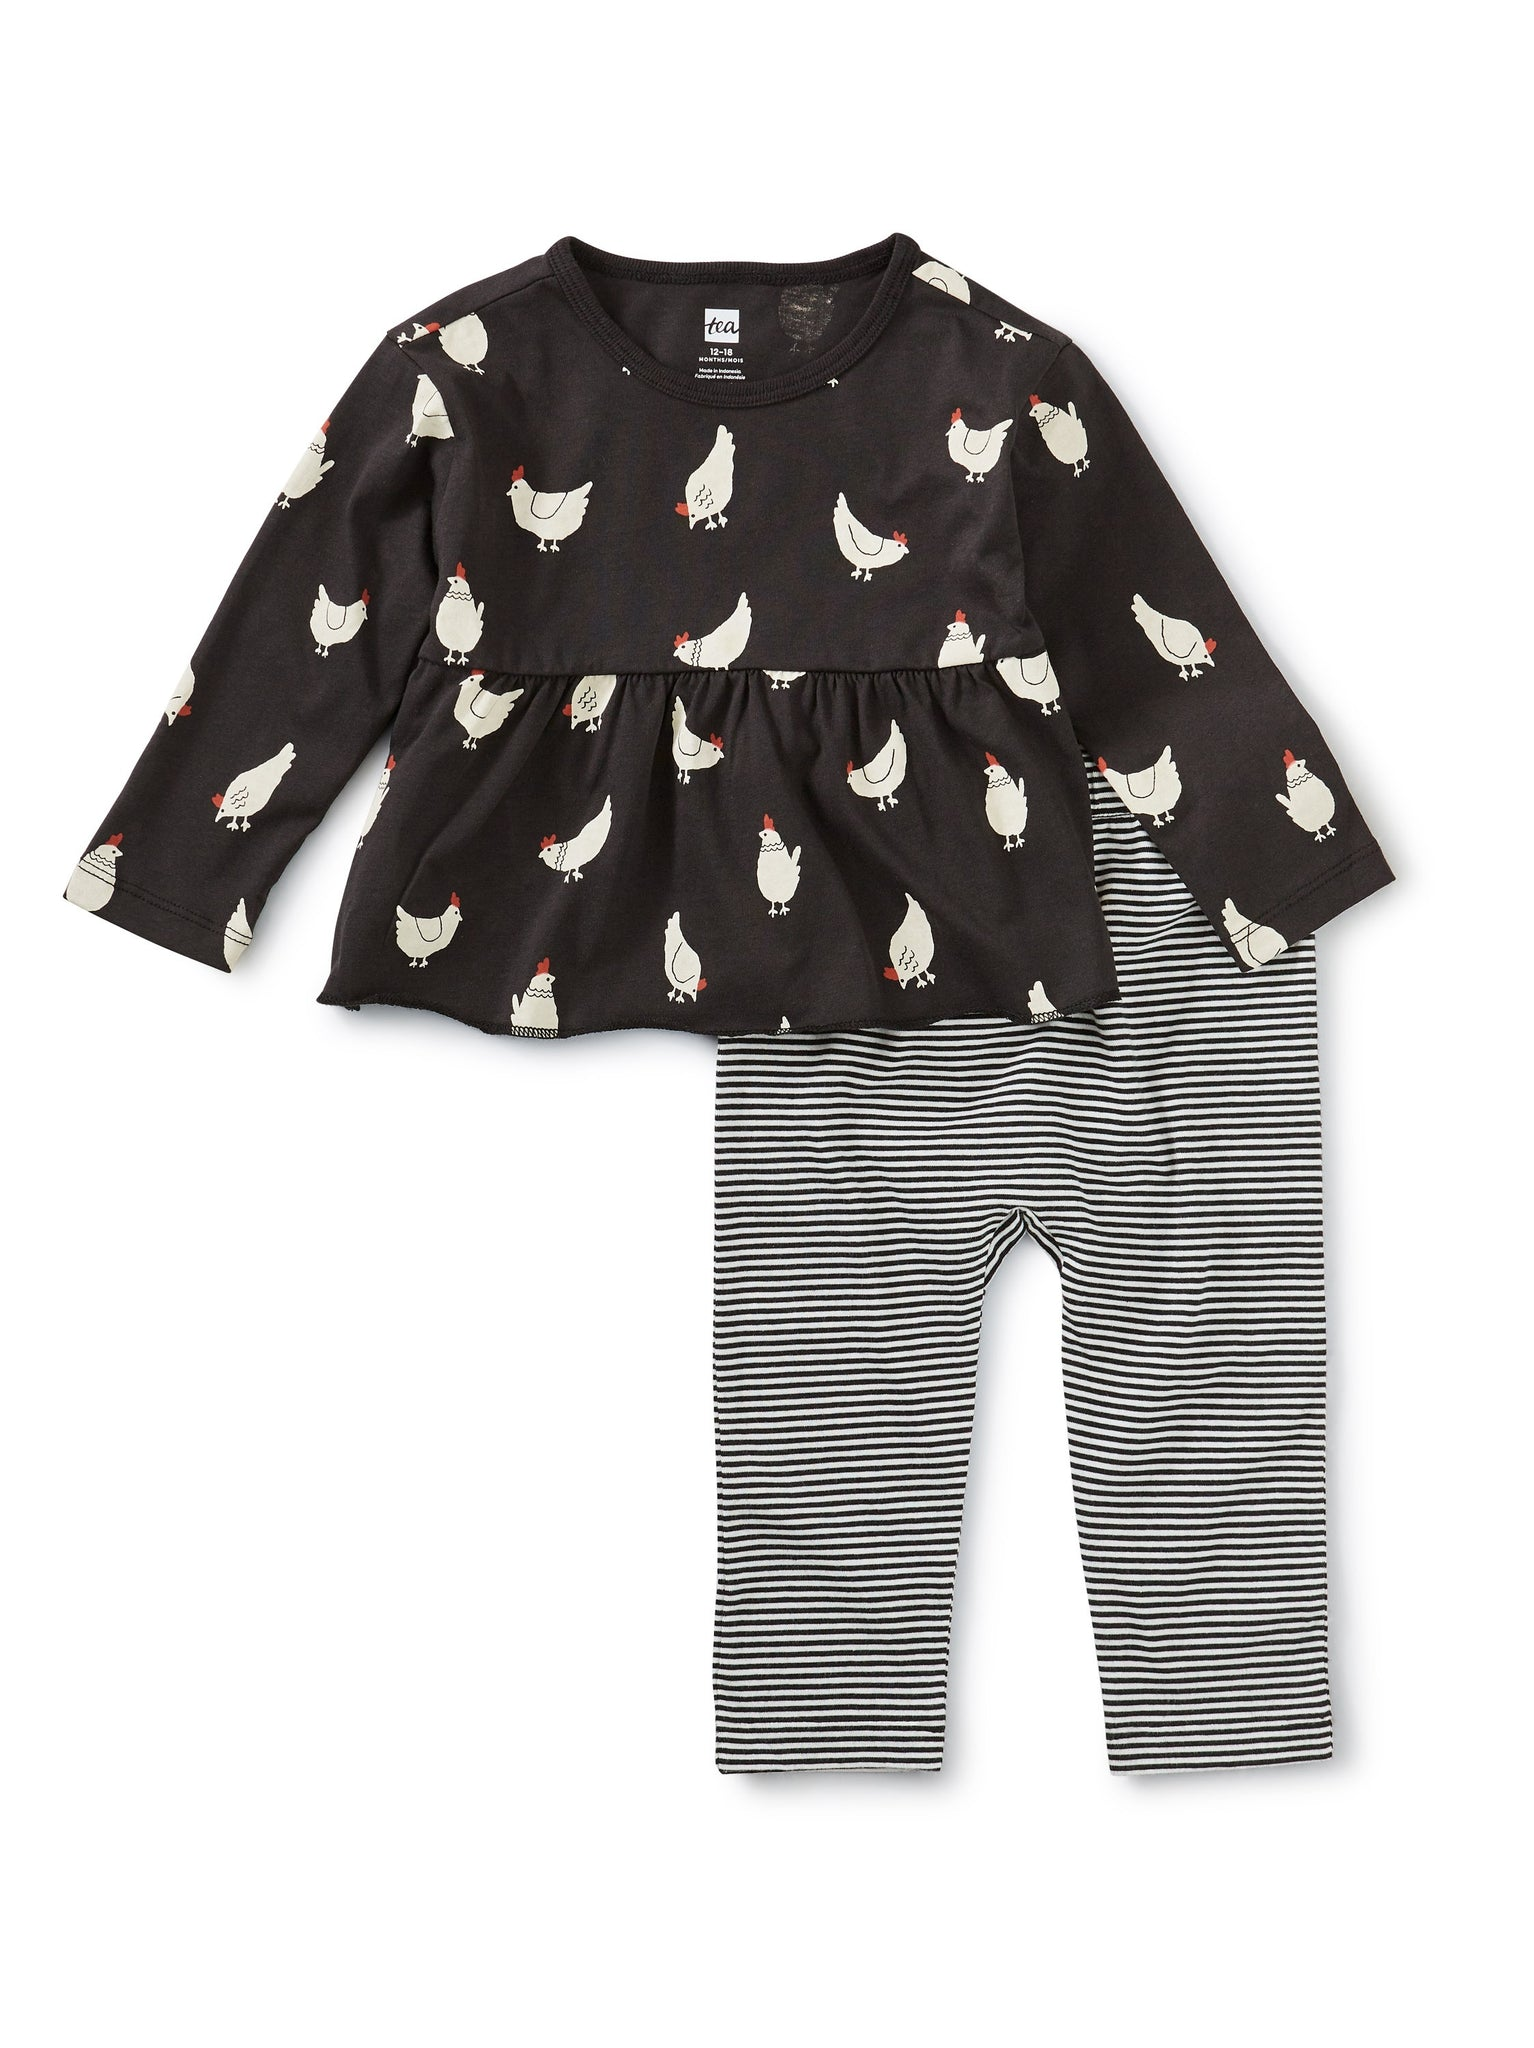 Cheery Cluck Cluck Baby Set